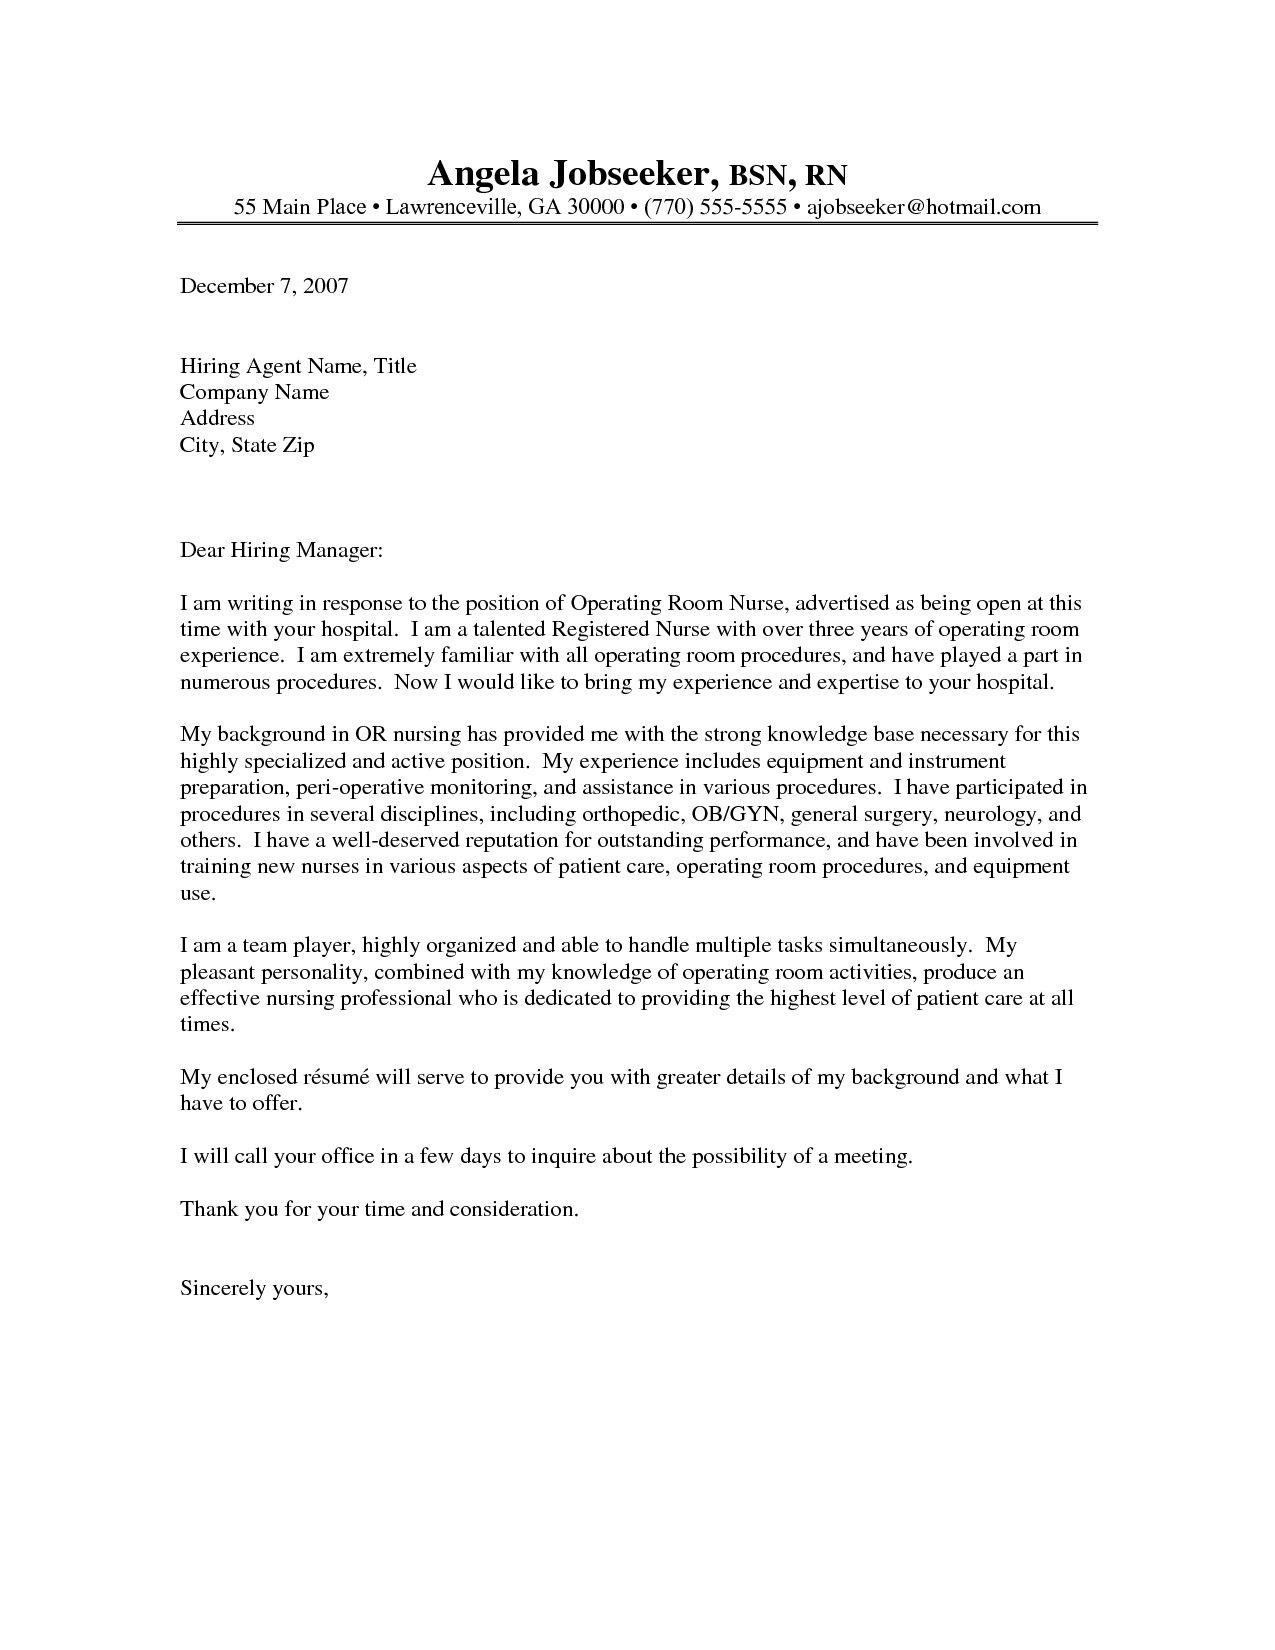 25 Writing A Good Cover Letter Cover Letter For Resume Resume Cover Letter Examples Good Cover Letter Examples Nurse practitioner cover letter new grad